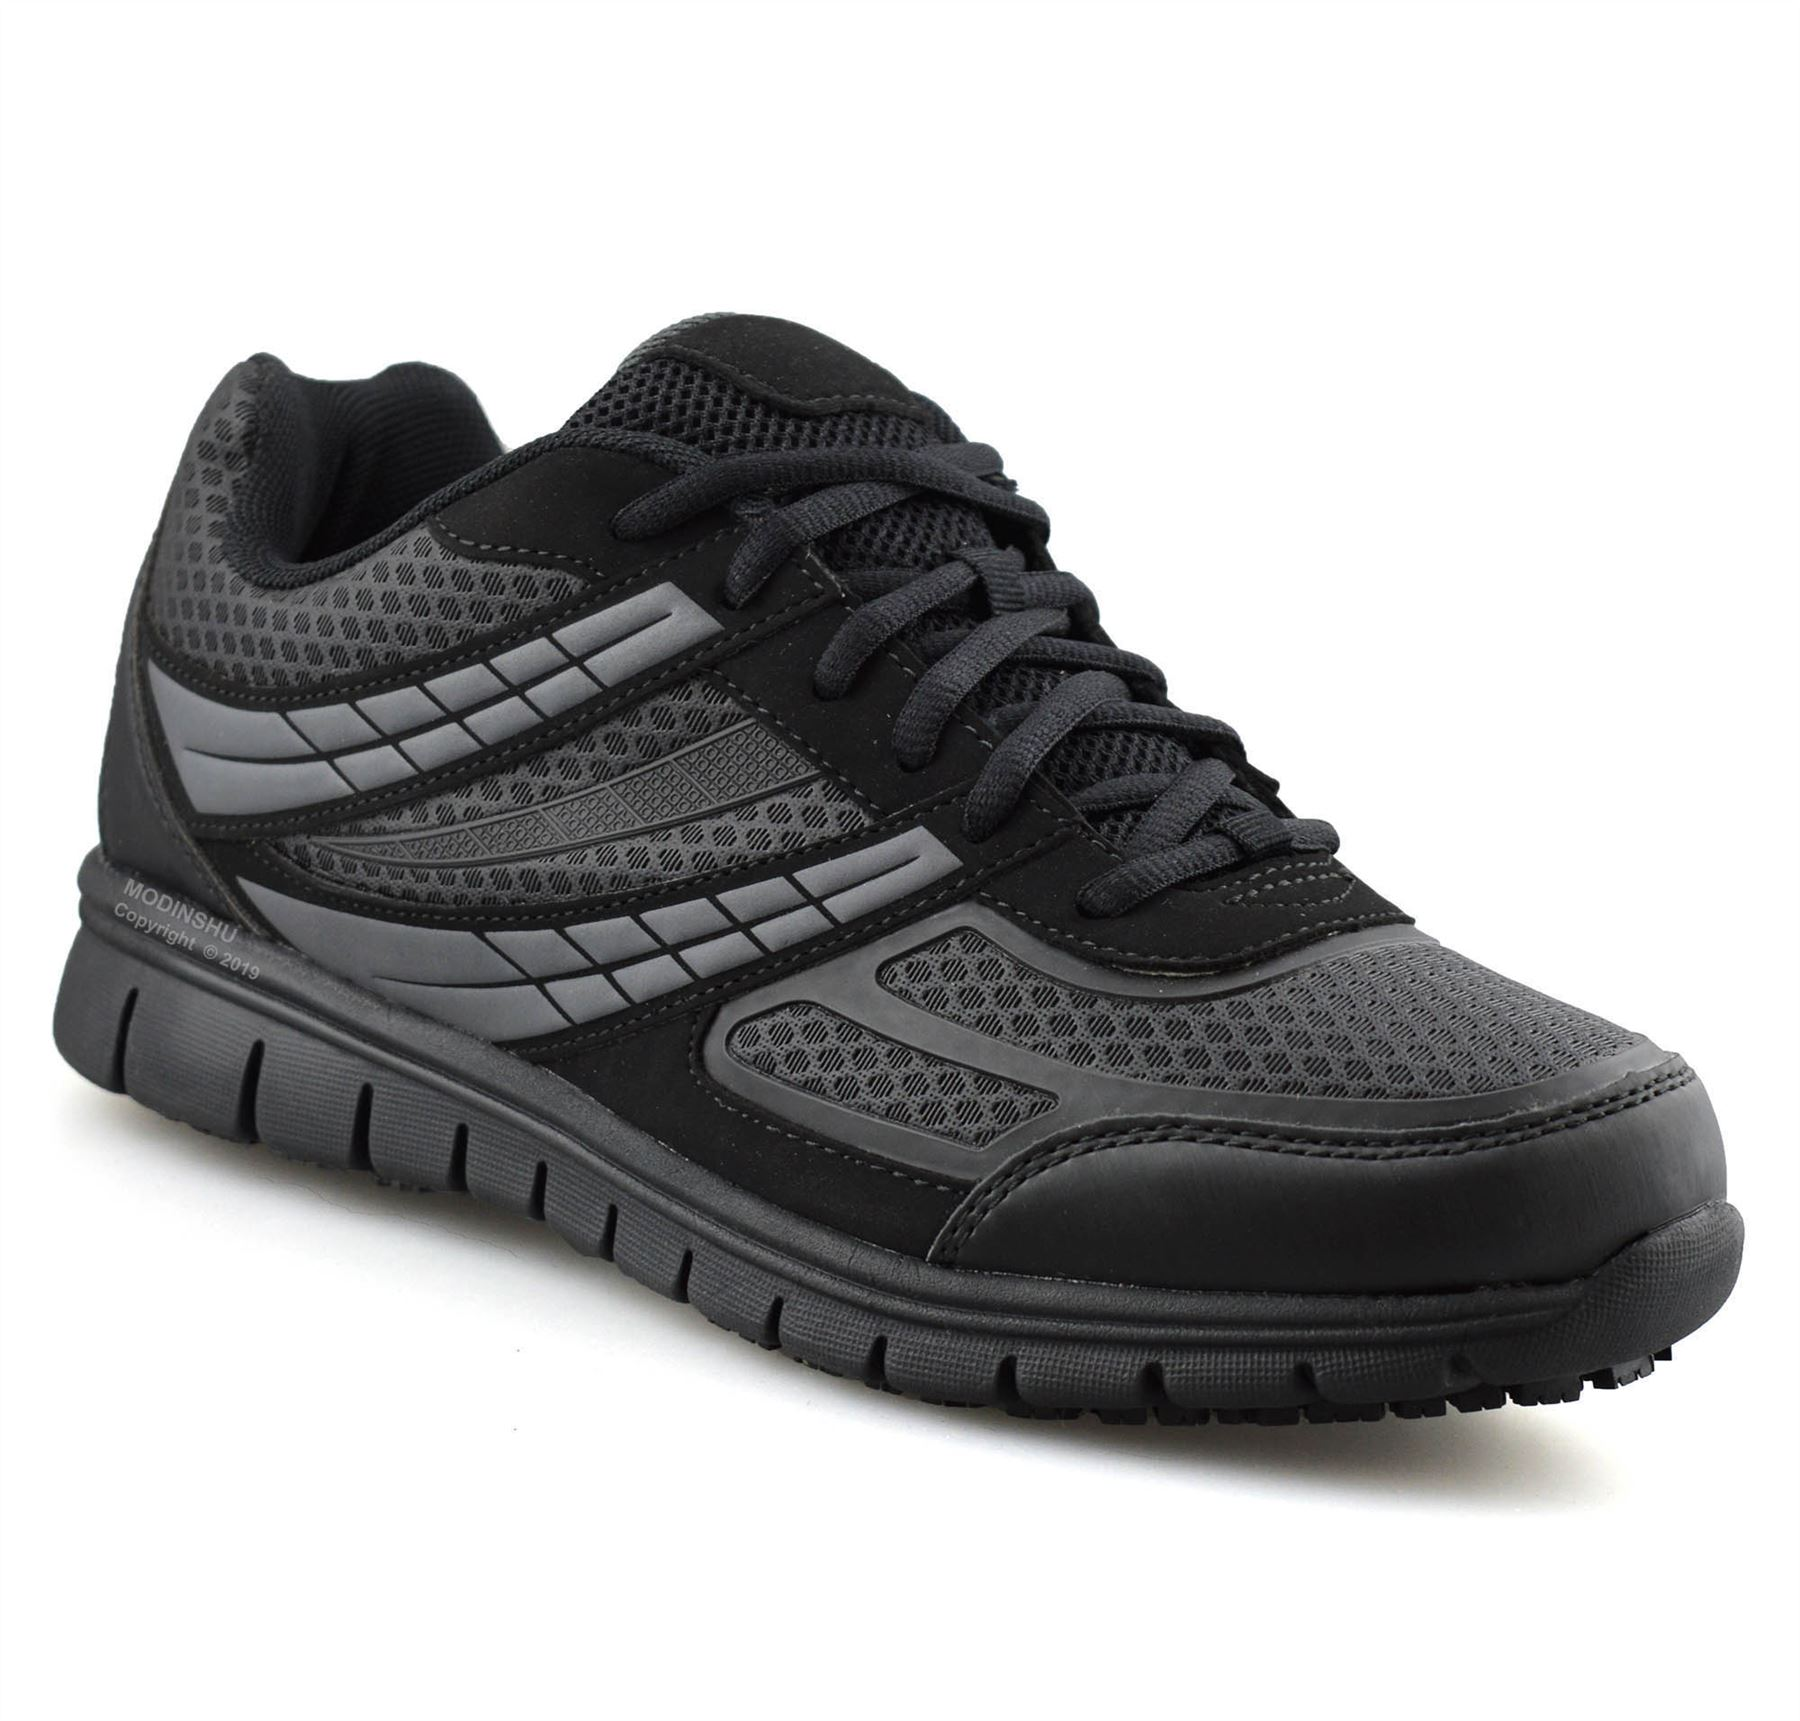 Mens-Casual-Lace-Up-Non-Slip-Memory-Foam-Walking-Hiking-Work-Trainers-Shoes-Size thumbnail 10